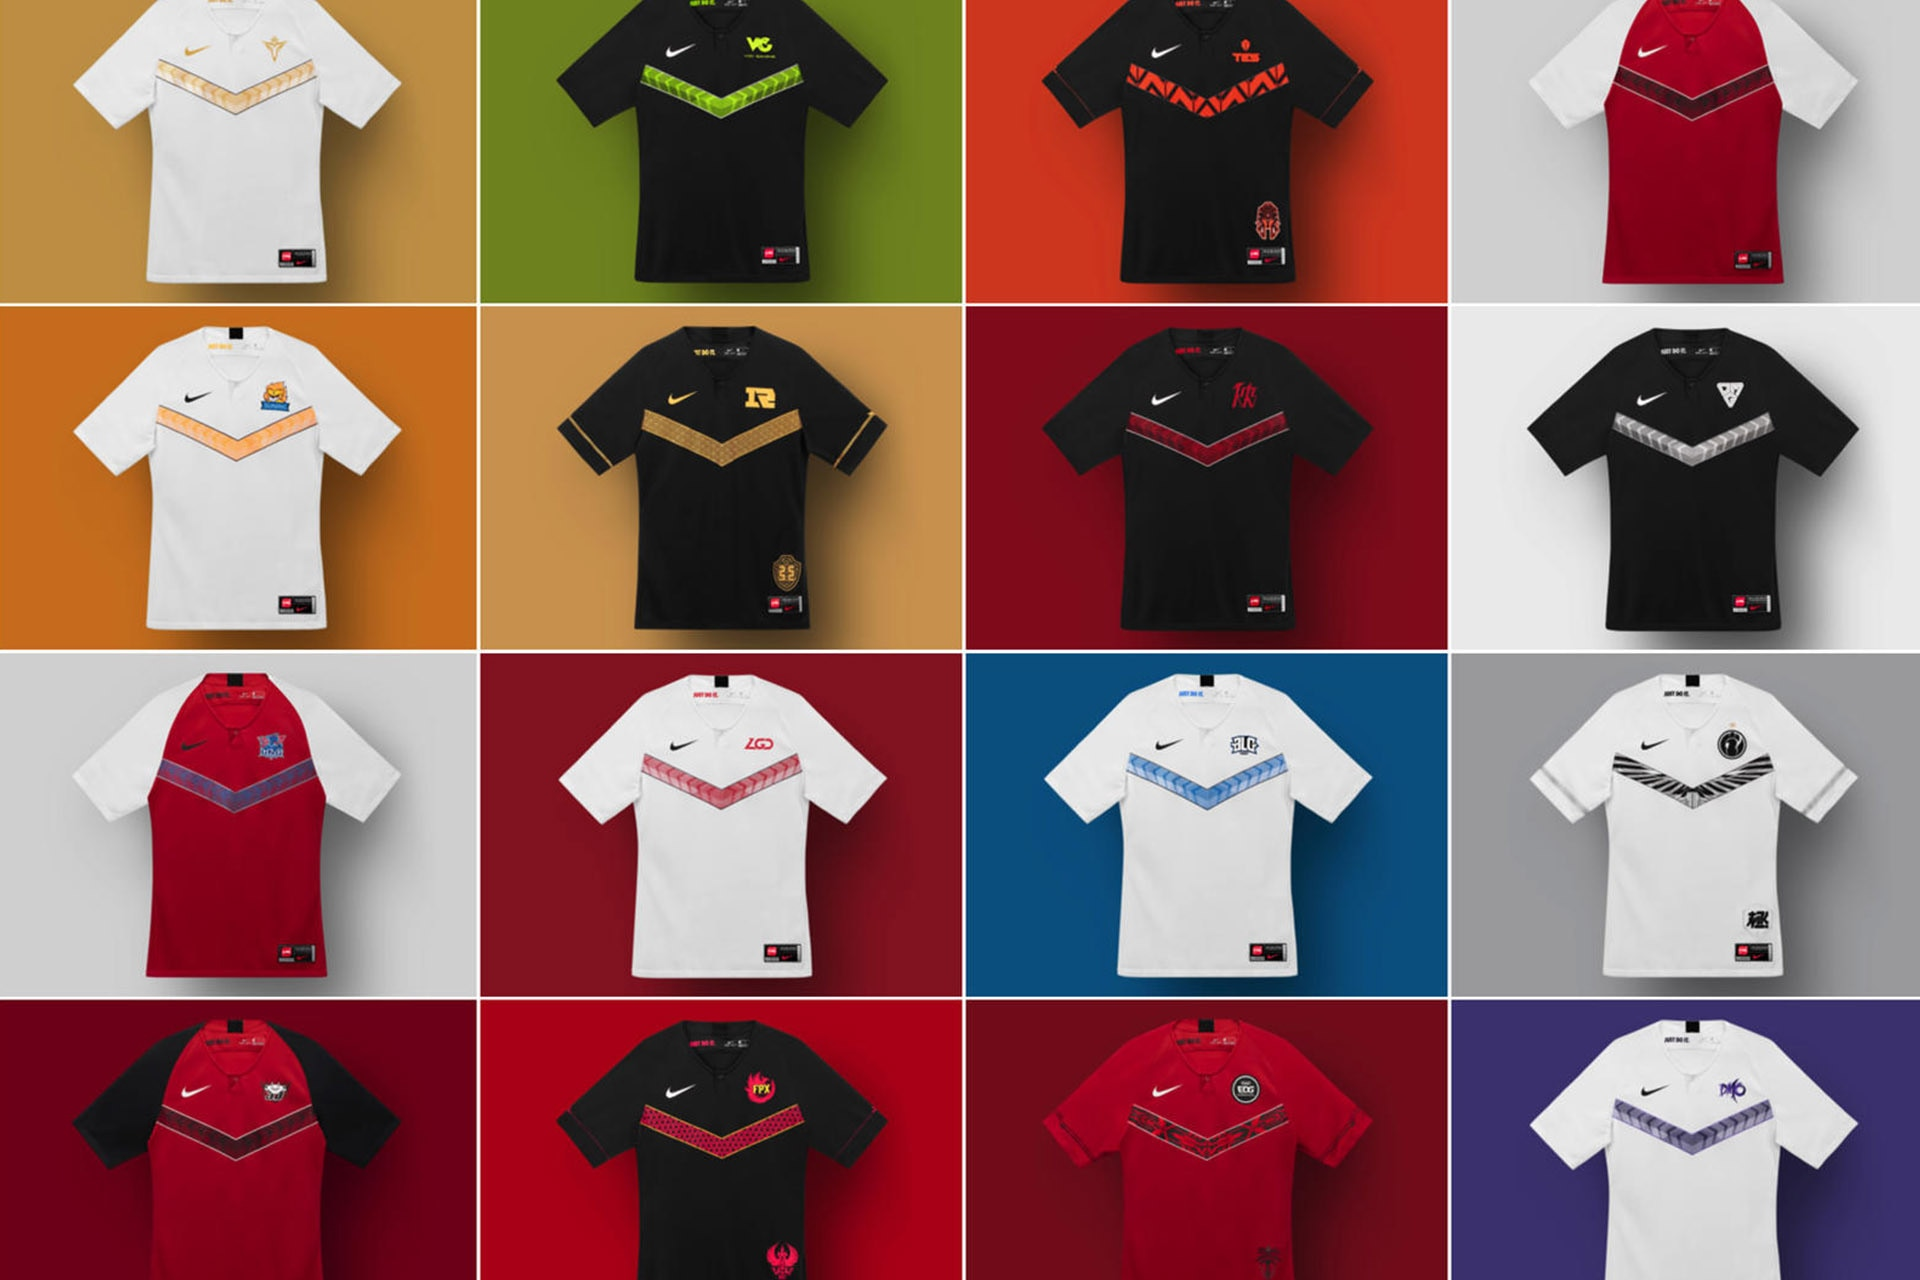 Esports Gets The Football Treatment As Nike Unveils Its League of Legends Pro League Kit Collection